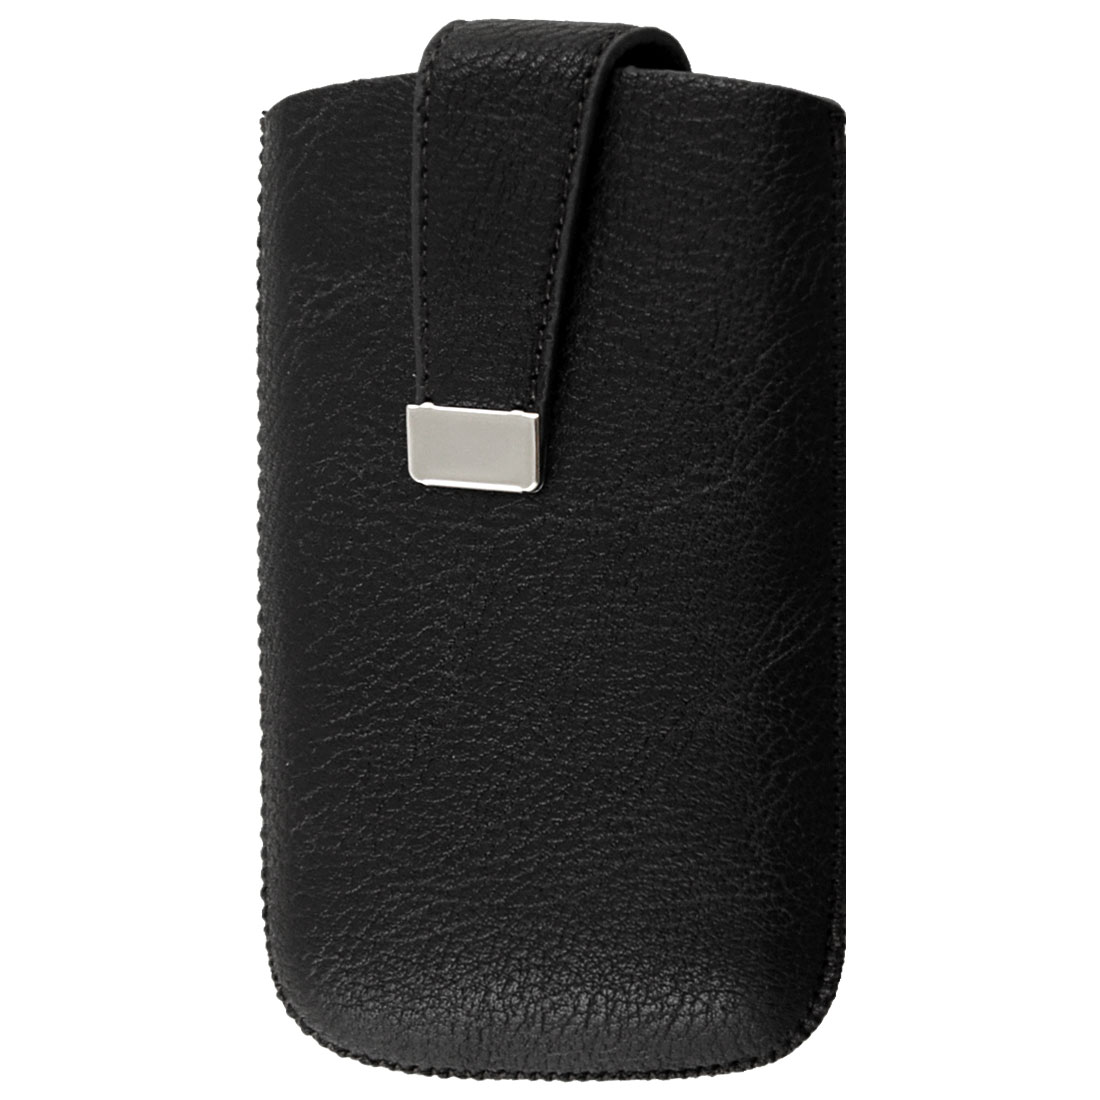 Black Faux Leather Magnetic Flip Pull Up Pouch for iPhone 3G 3GS